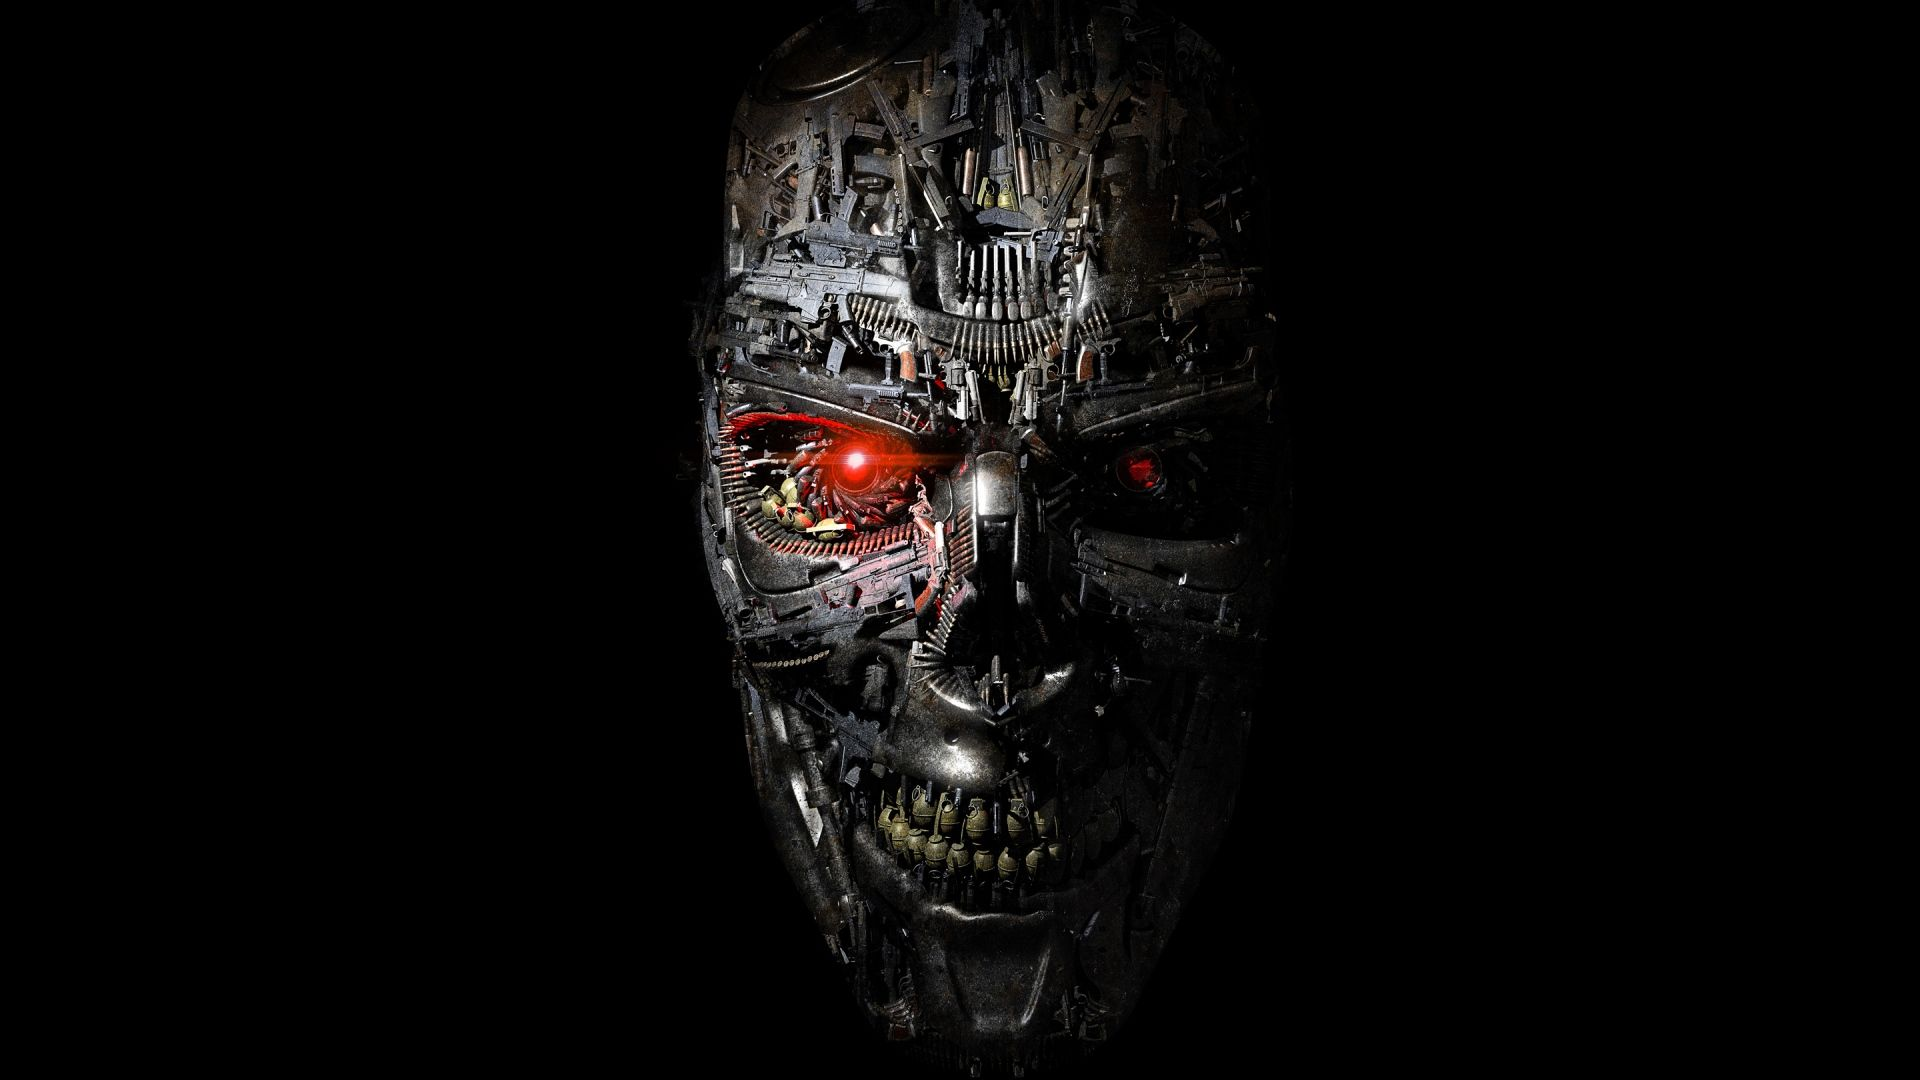 Full Hd 1080p Terminator Wallpapers Hd Desktop Backgrounds